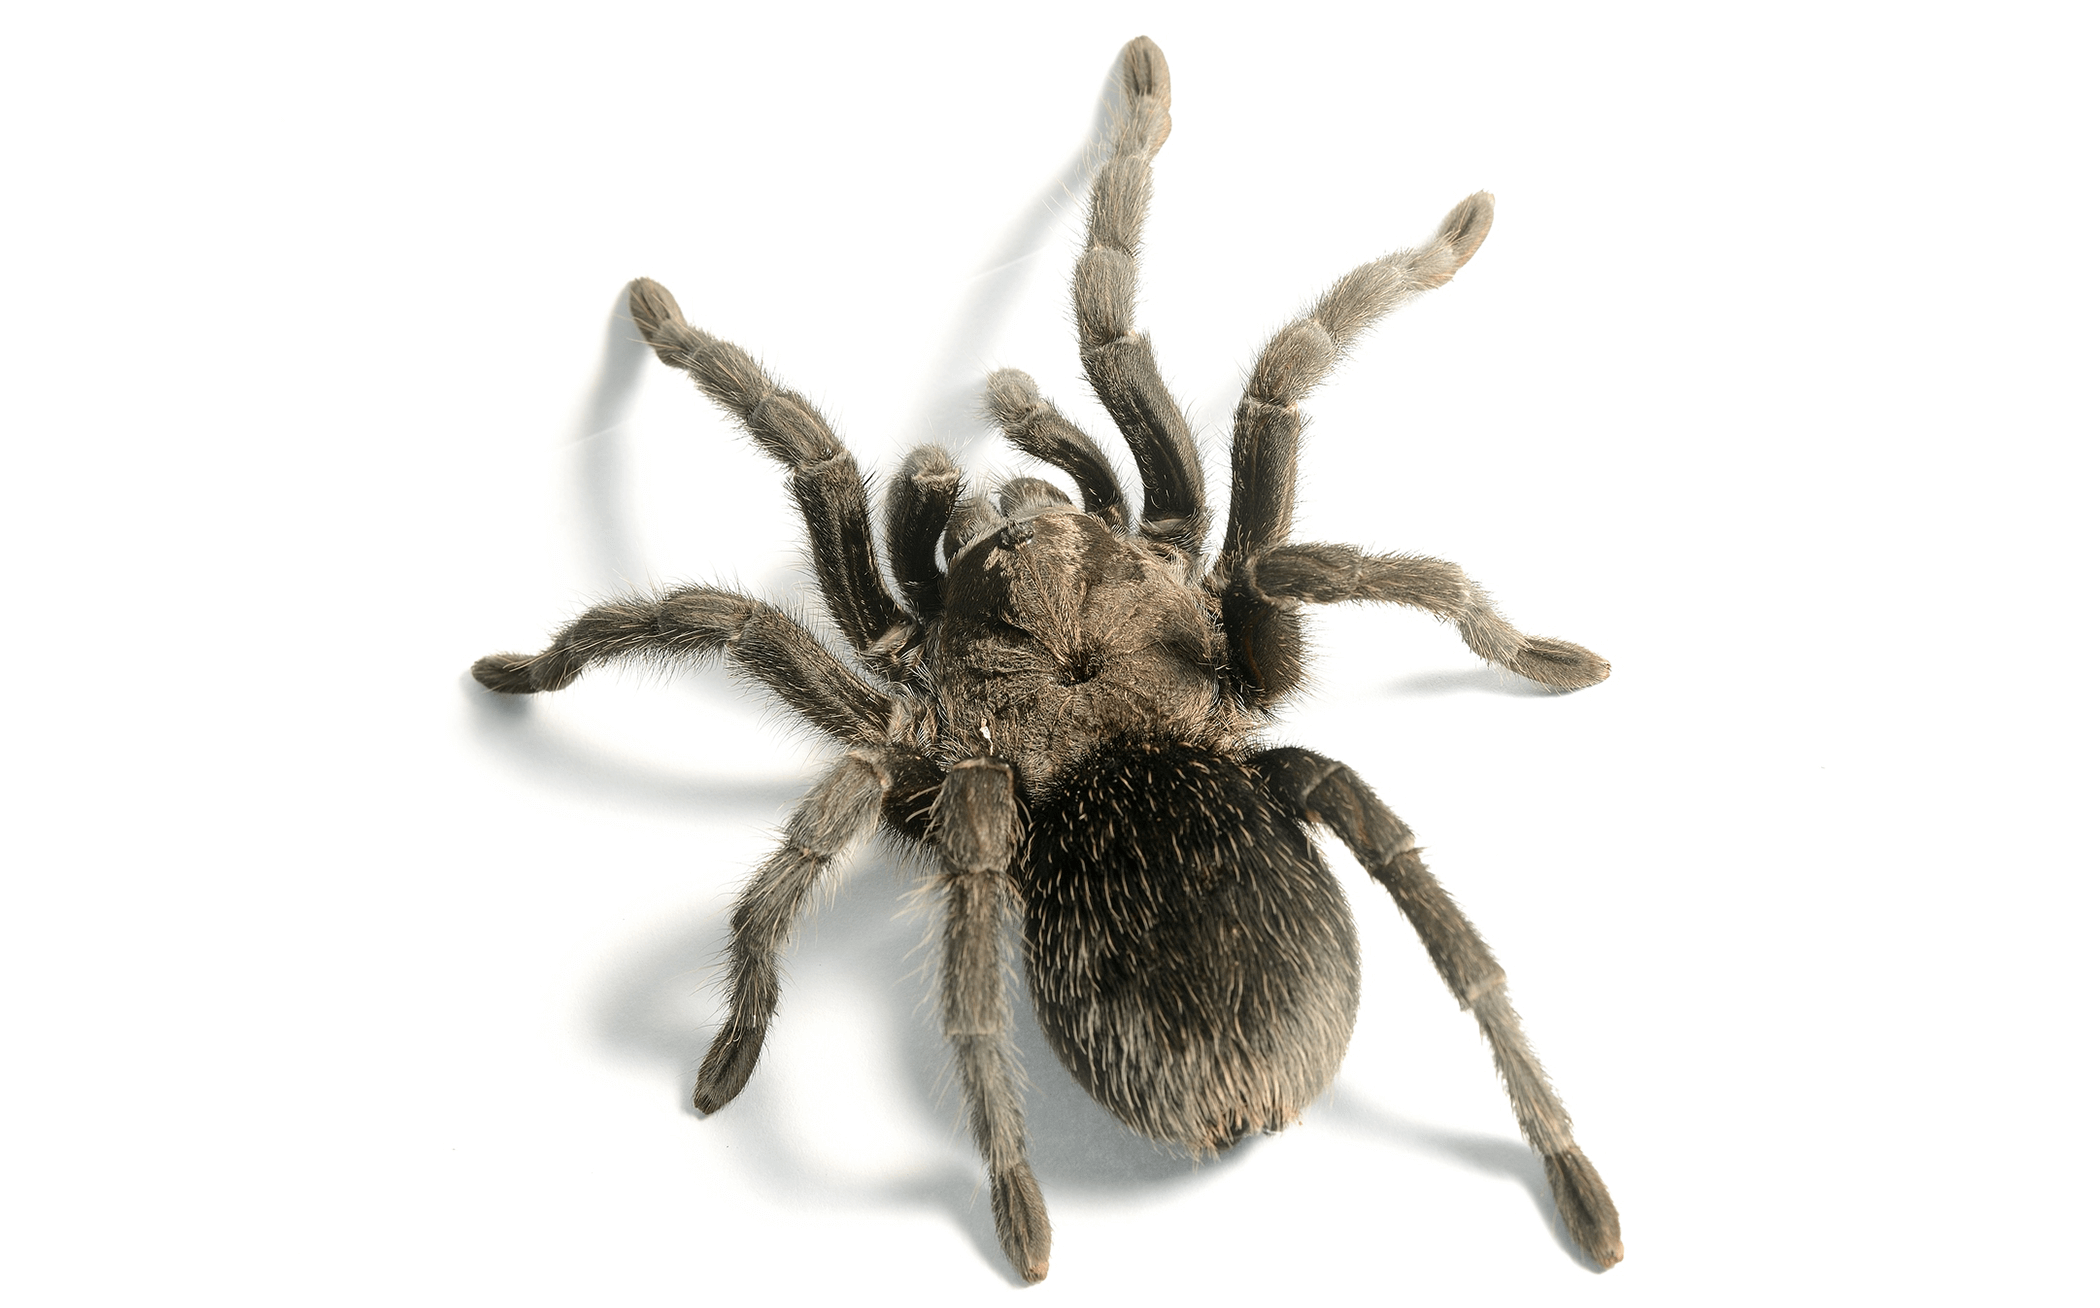 Can tarantulas recognise their owners?